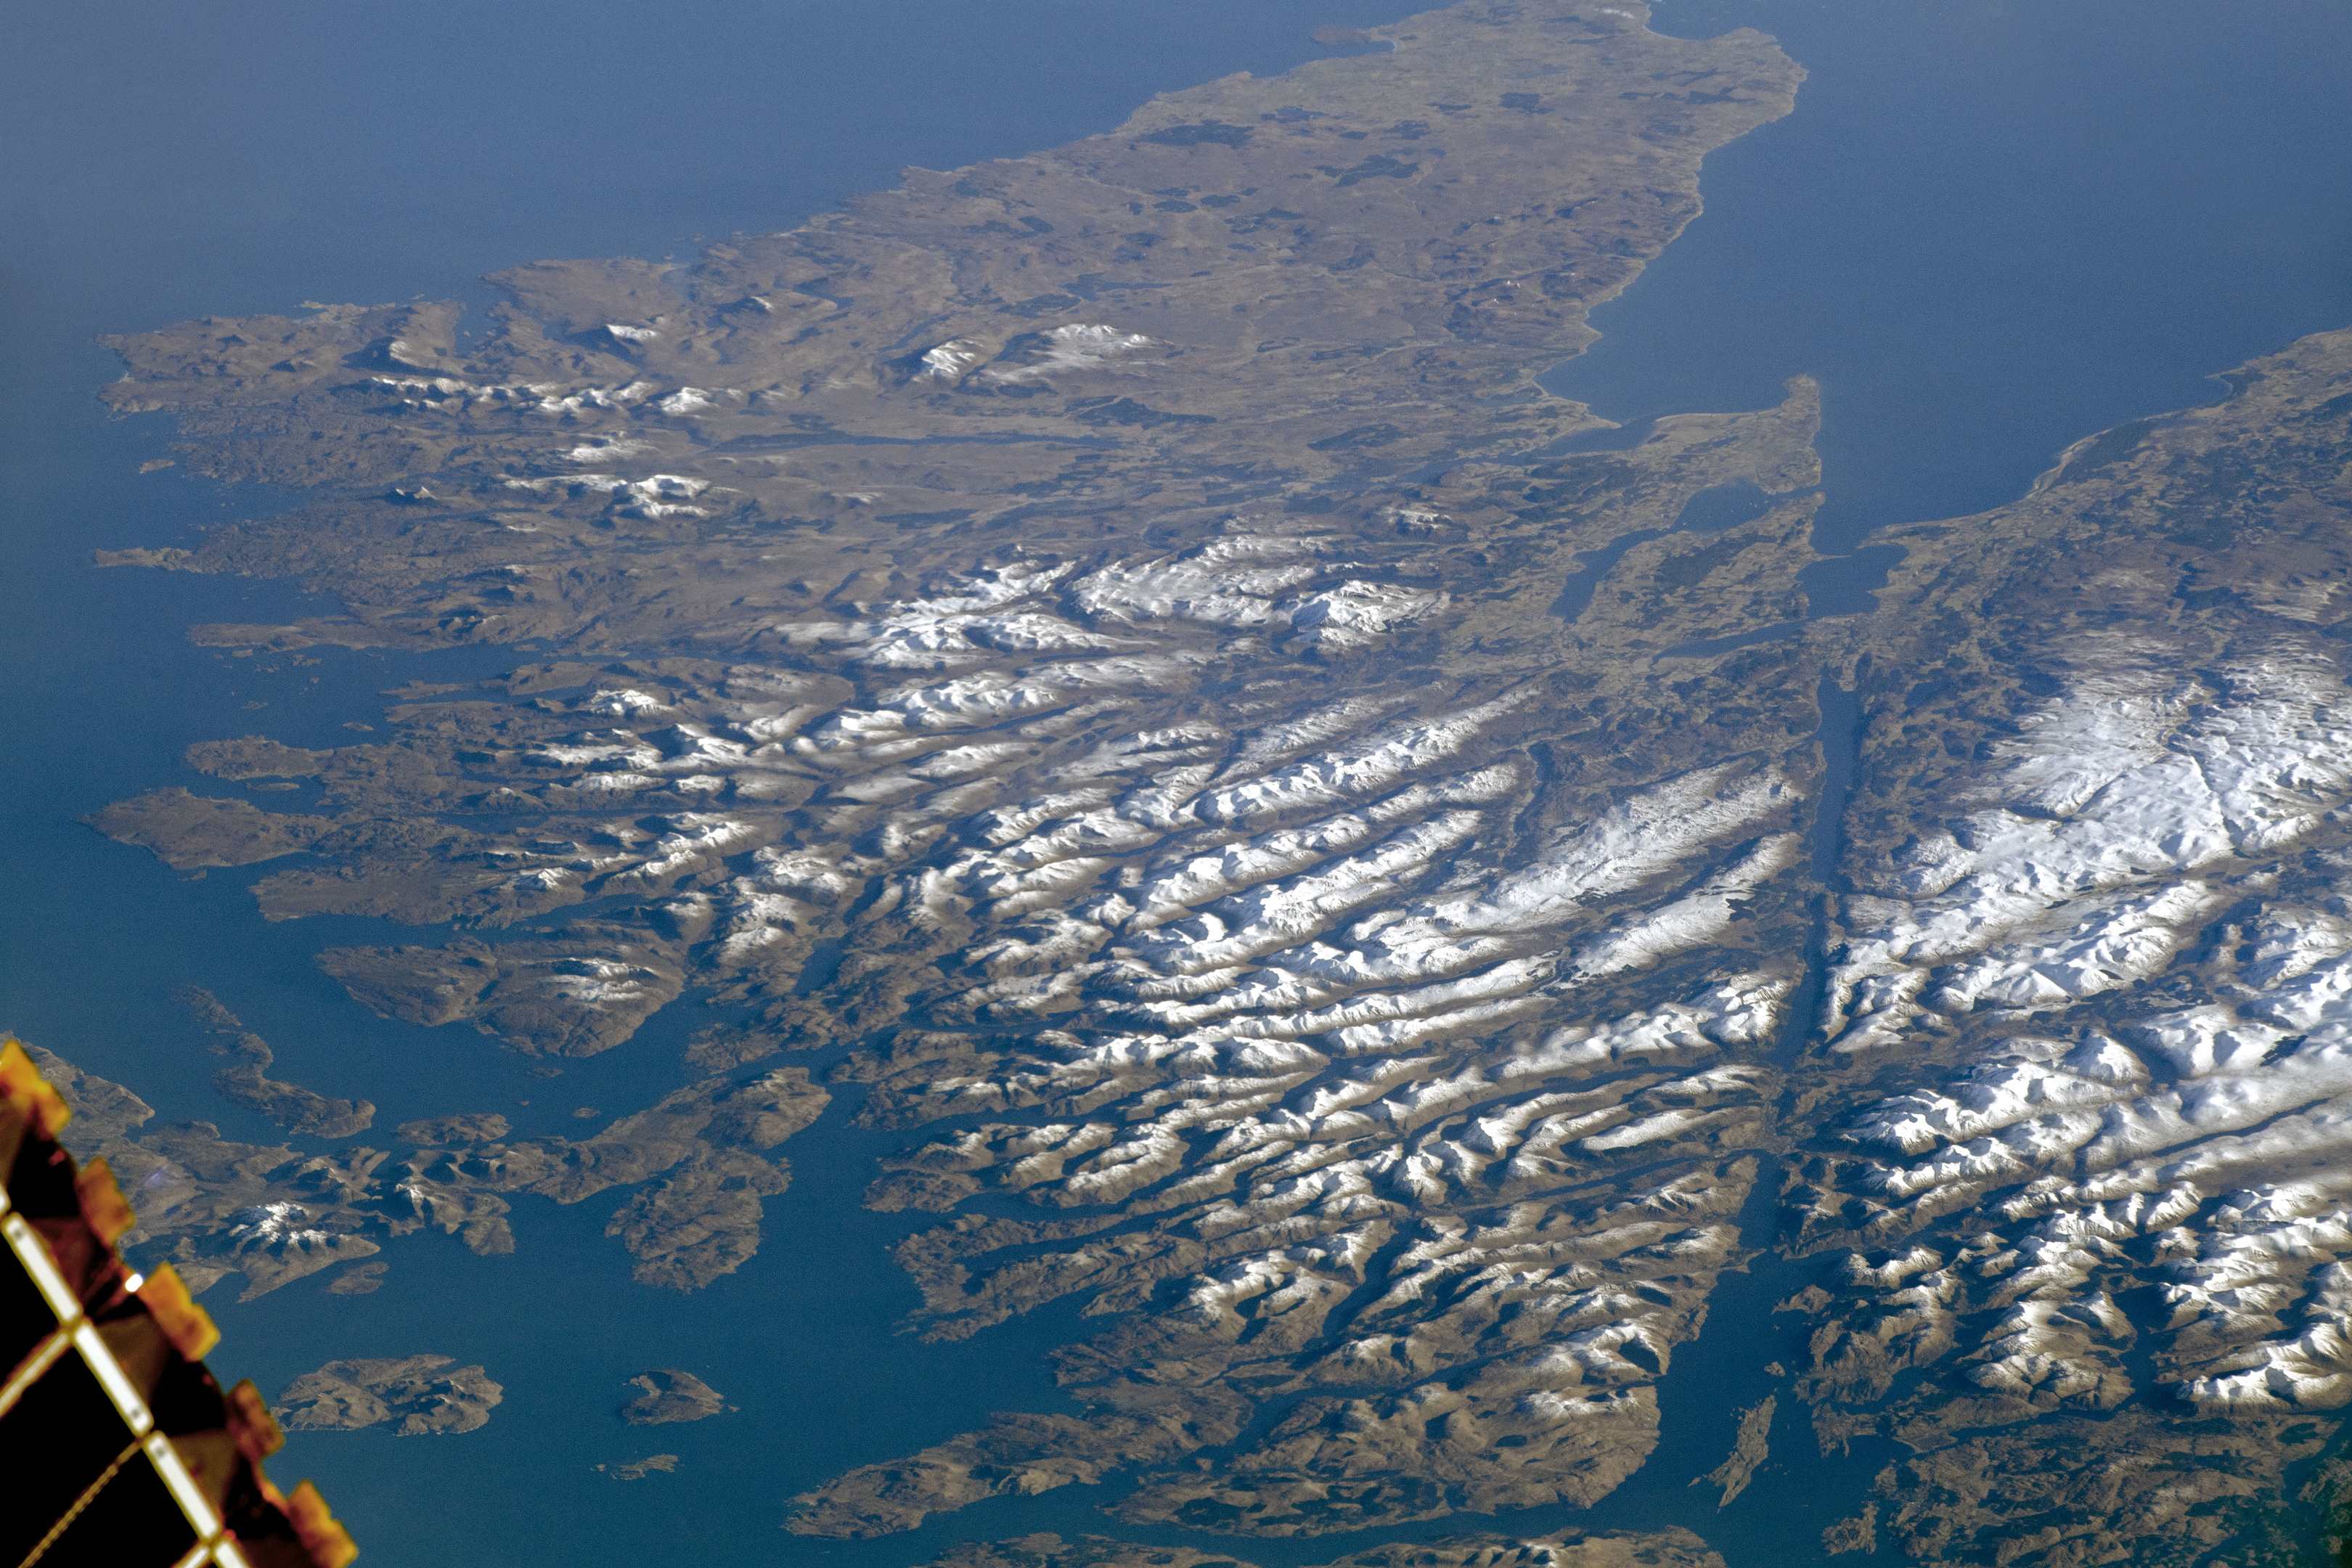 A stunning shot of the Scottish Highlands has been captured by the International Space Station. Credit: International Space Station.